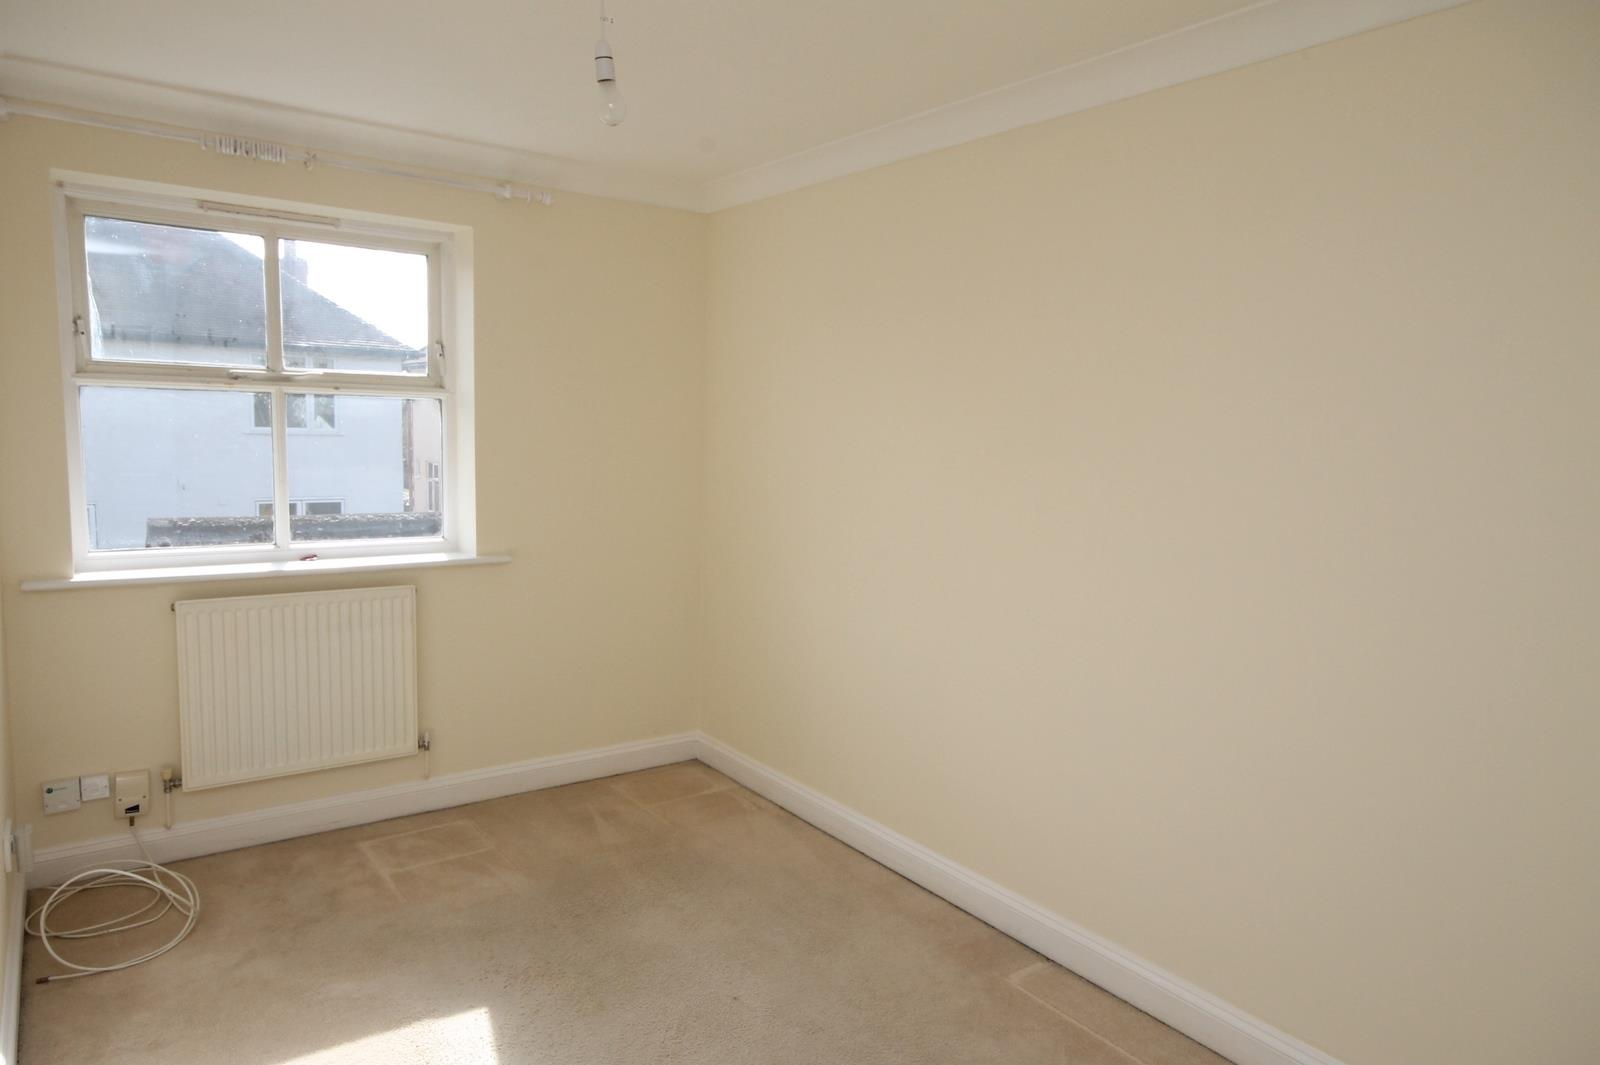 4 bed house to rent in Reedley Road, Bristol  - Property Image 7